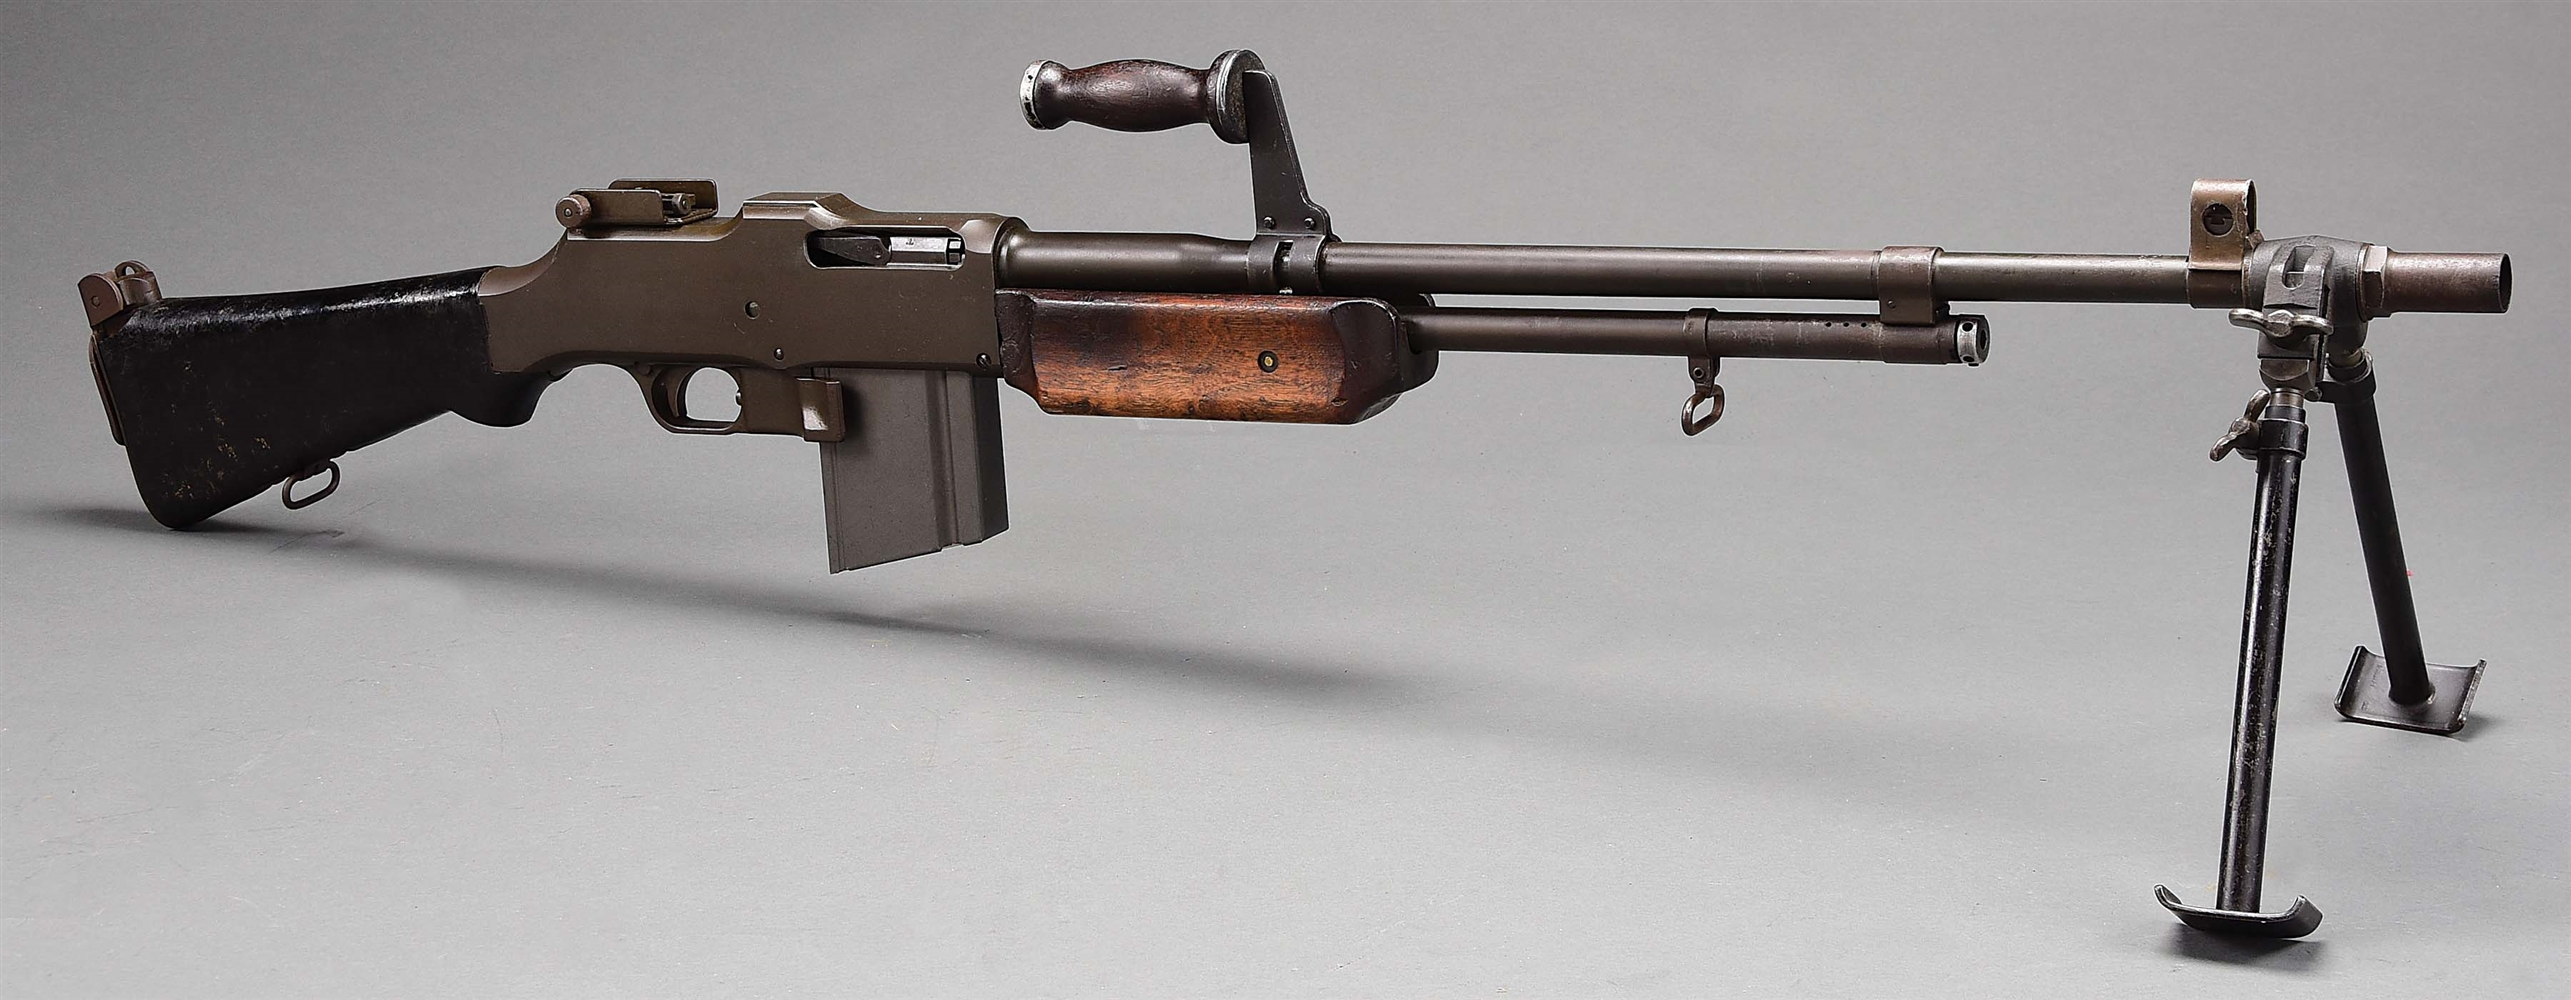 (N) OUTSTANDING AND RARE ORIGINAL LEND-LEASE ROYAL TYPEWRITER MODEL 1918A2 BROWNING AUTOMTIC RIFLE (B.A.R) MACHINE GUN (PRE-86 DEALER SAMPLE).